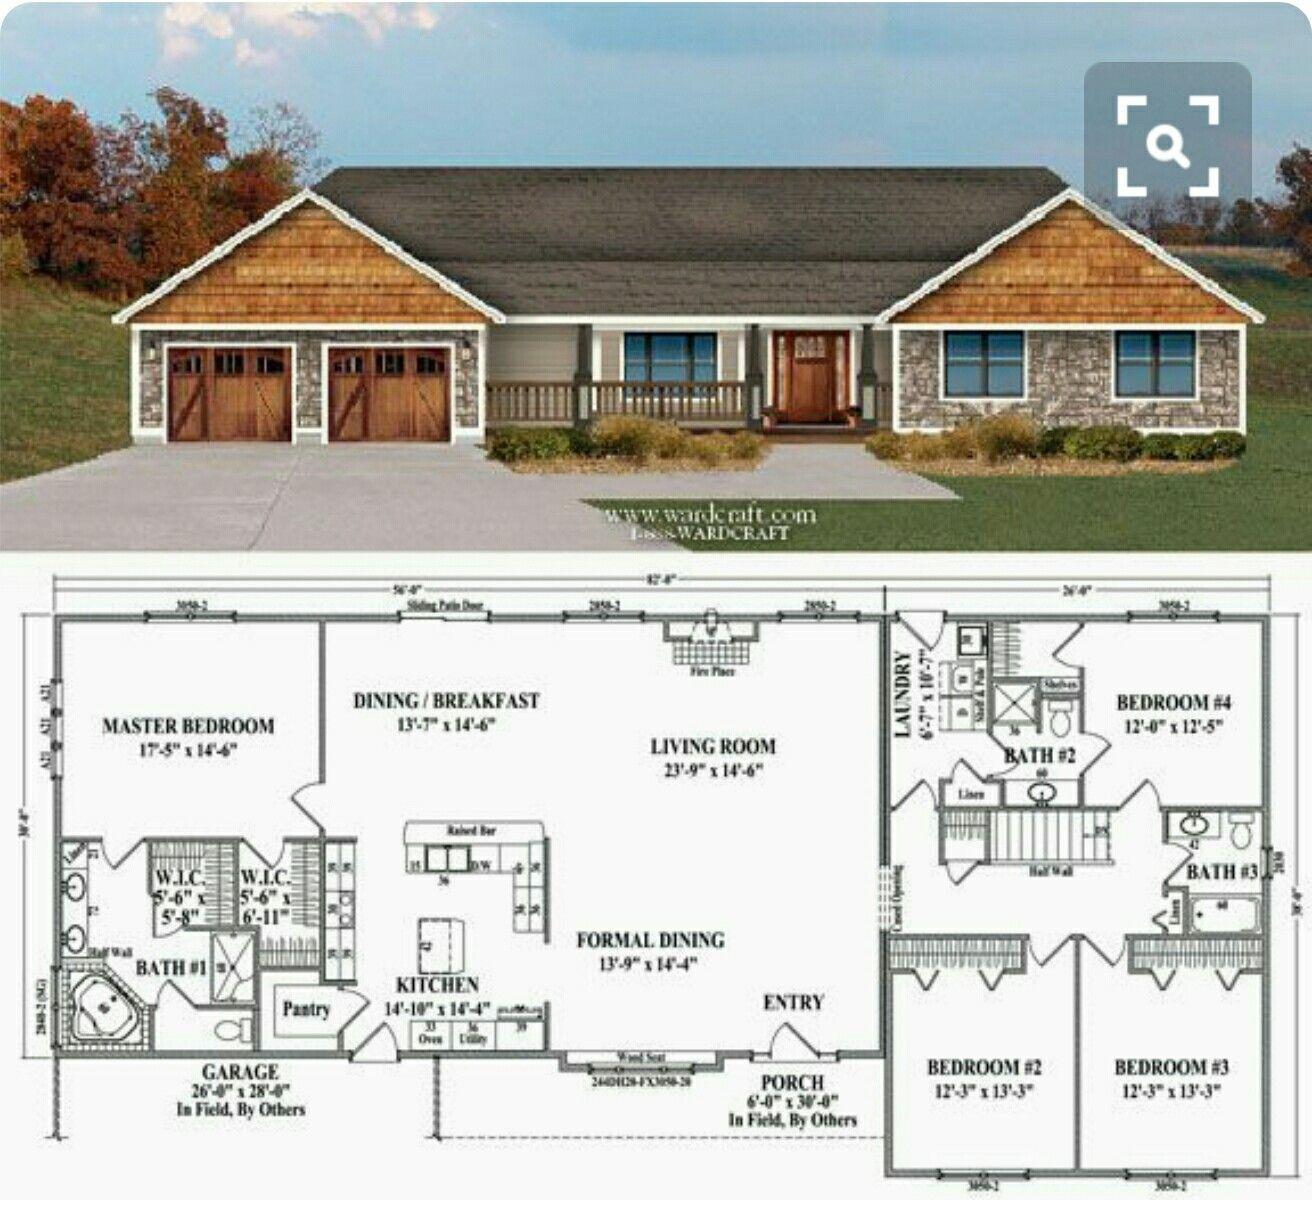 This One Has Everything I Want Even Bathroom For Kara Give Me The Porch Is Perfect Tub In Corner New House Plans Ranch House Plans Floor Plans Ranch